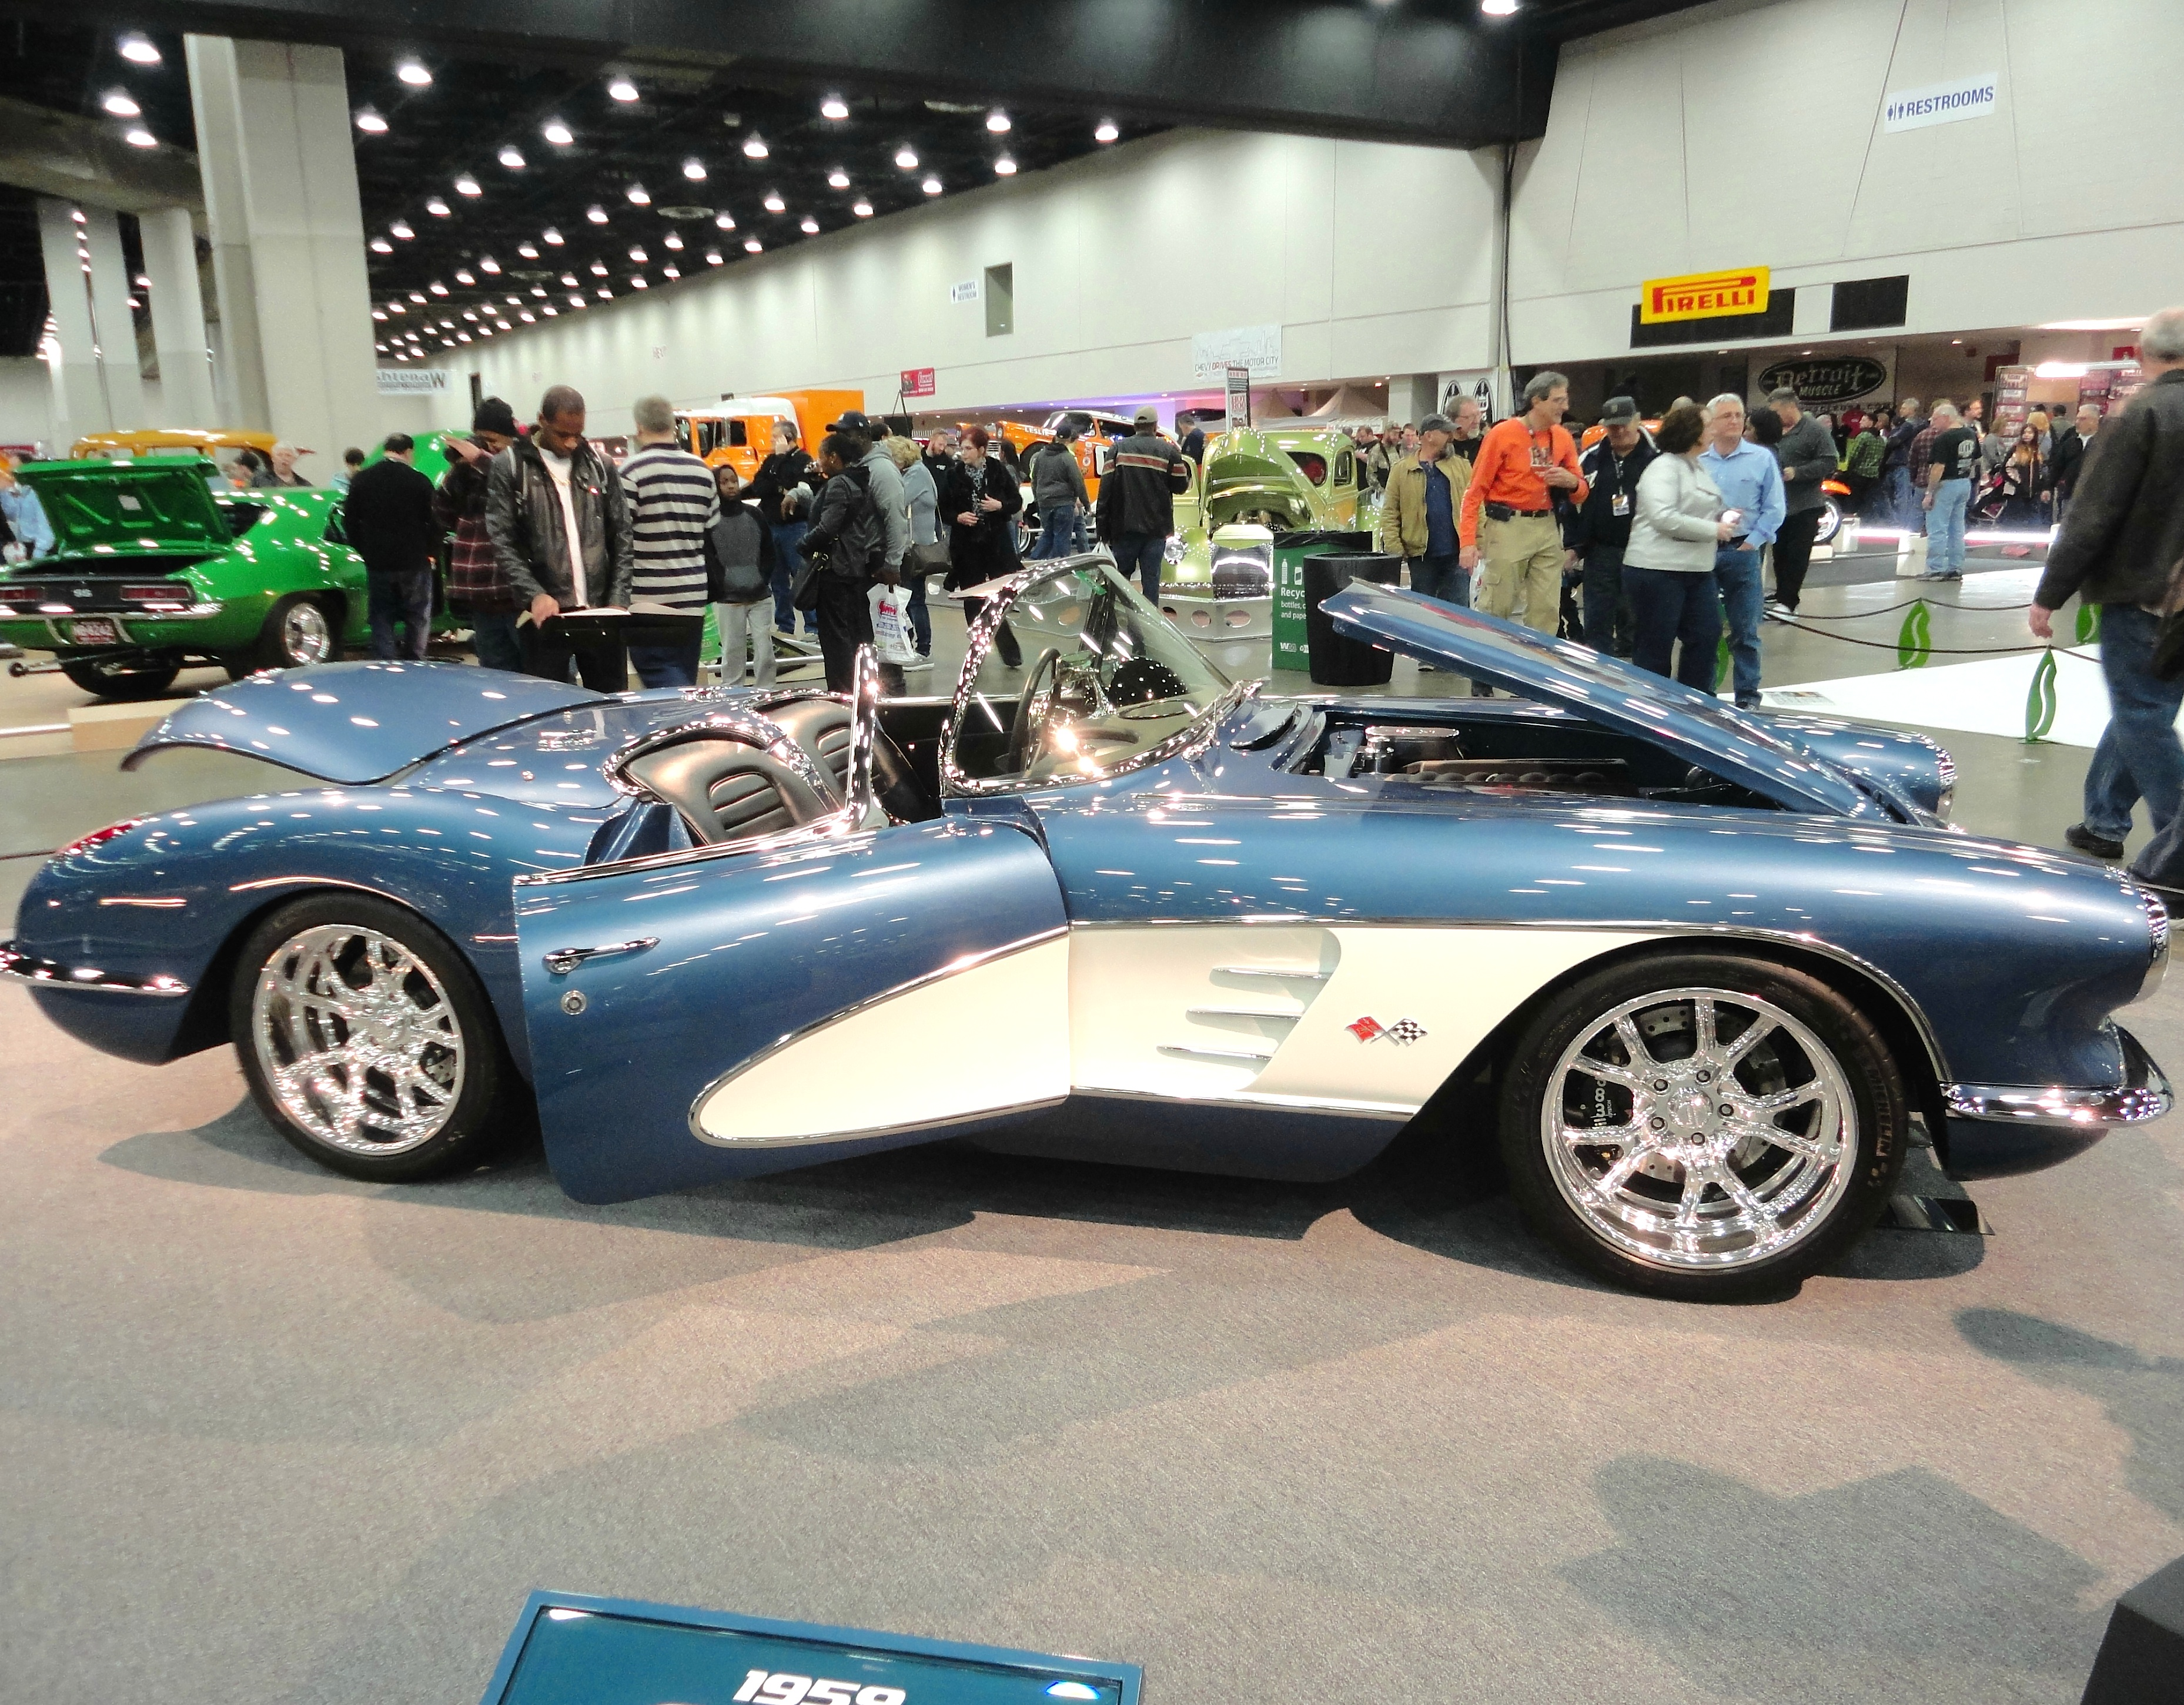 Thousands of visitors showed up for Autorama in Detroit in February to see modern cars, classics, hot rods and motorcycles. This 1959 Corvette was rebuilt and customized to run like new. It still holds the classic look of the original vehicle. PHOTO/CAITLIN RENTON